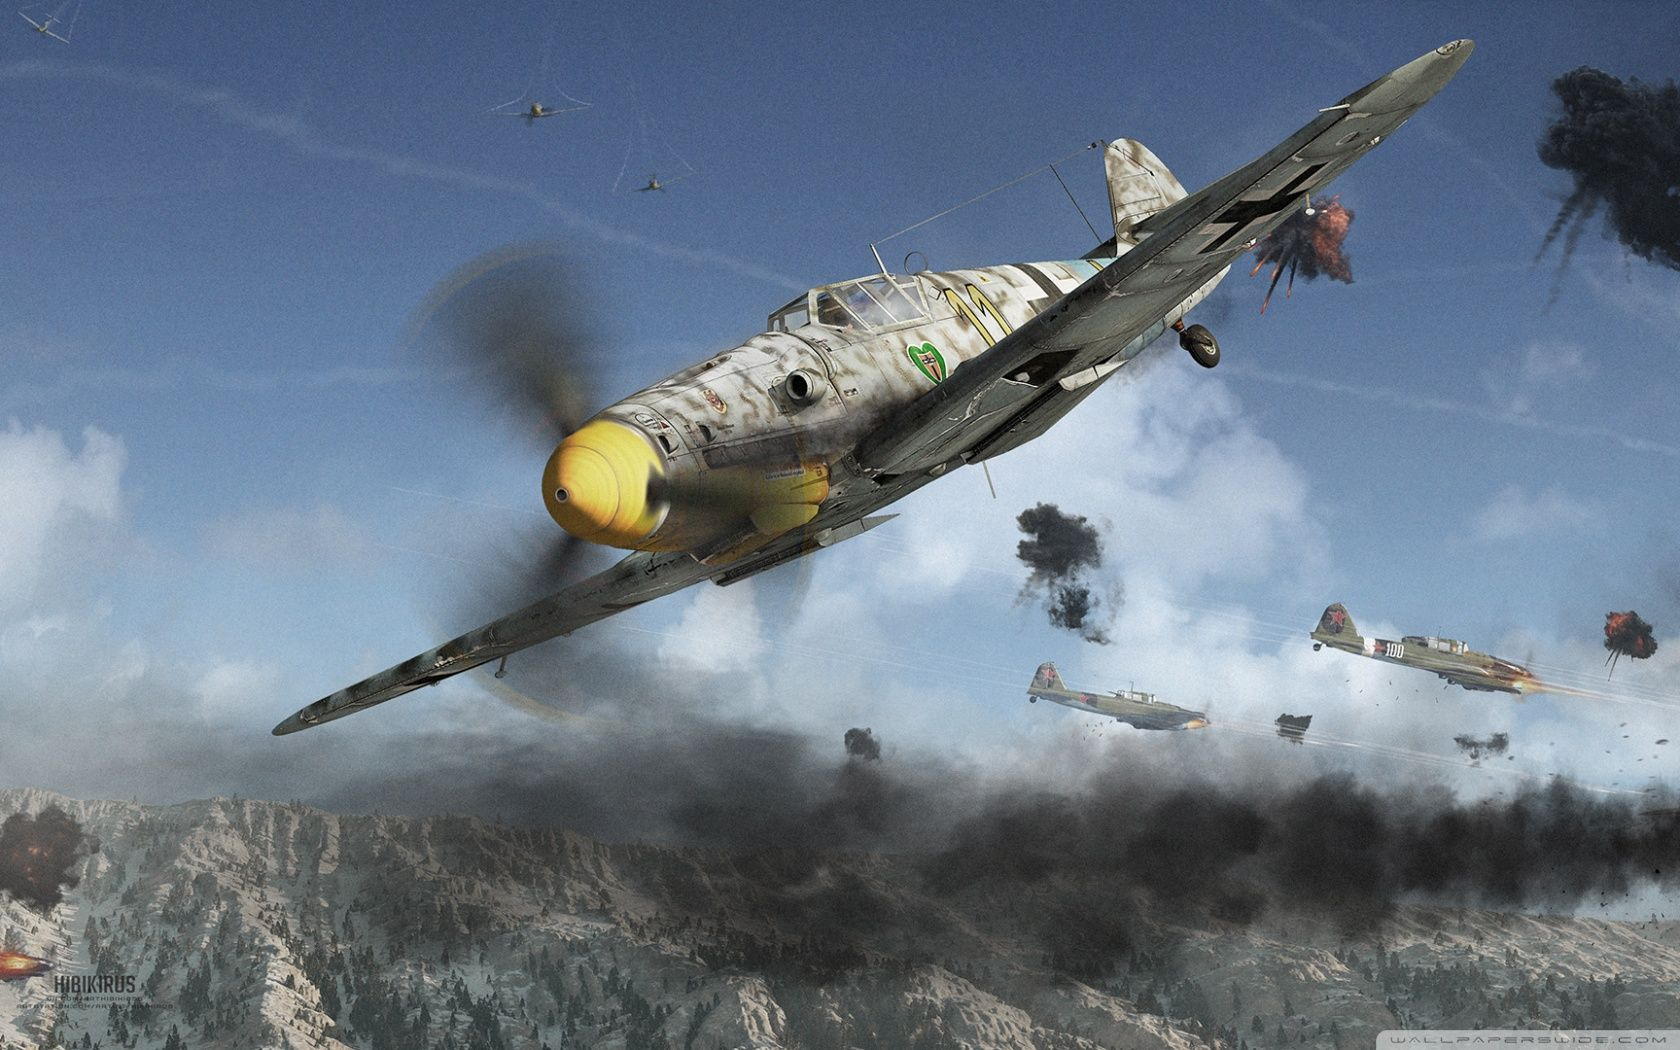 17 Kills in a Day - True Story of Hans-Joachim Marseille - WWII Historic Dogfights Recreation